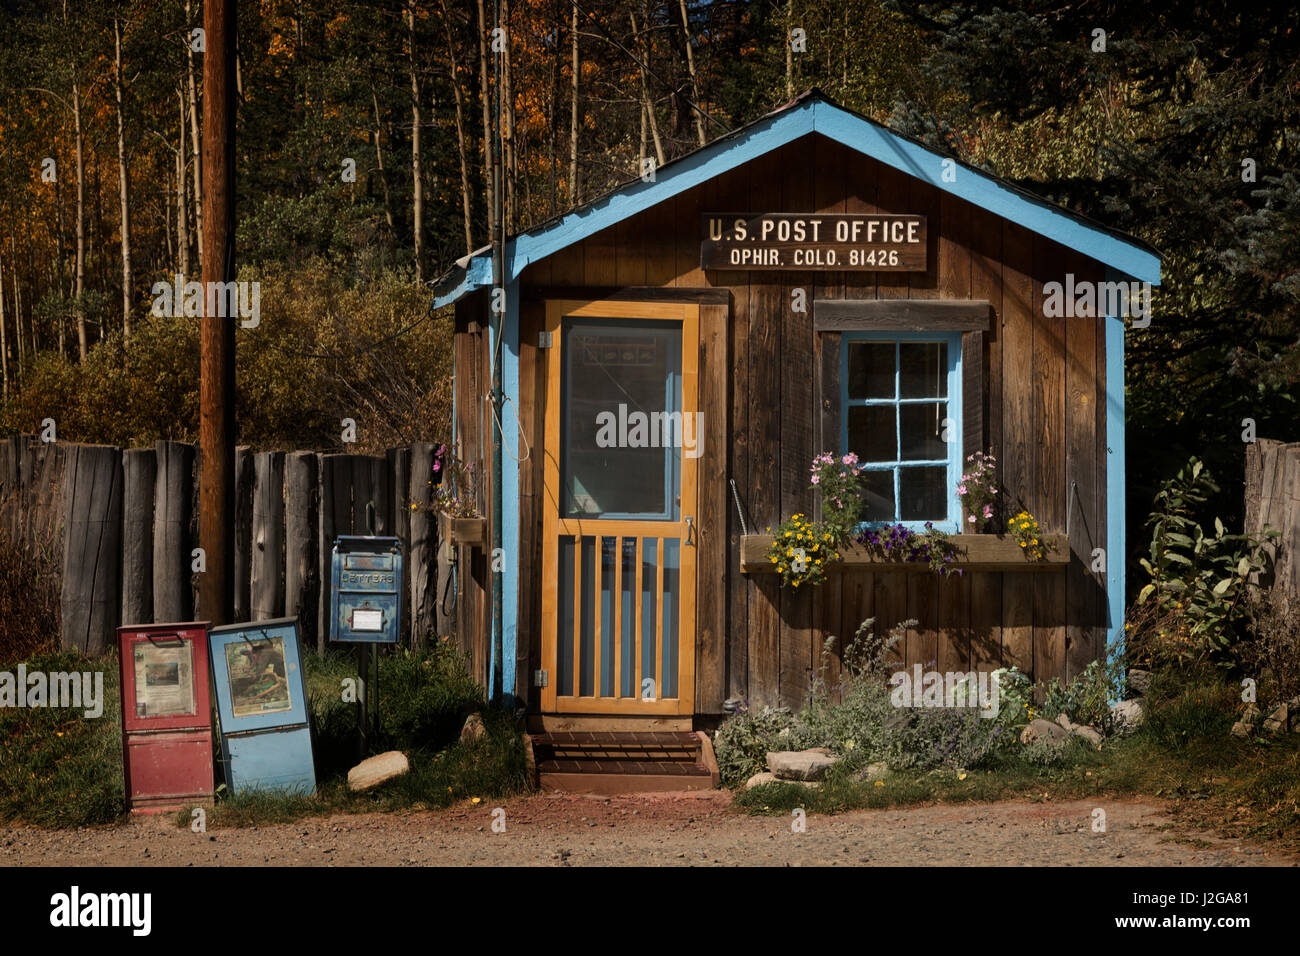 USA, Colorado, Ophir. Small post office building. Credit as: Don Grall / Jaynes Gallery / DanitaDelimont.com - Stock Image